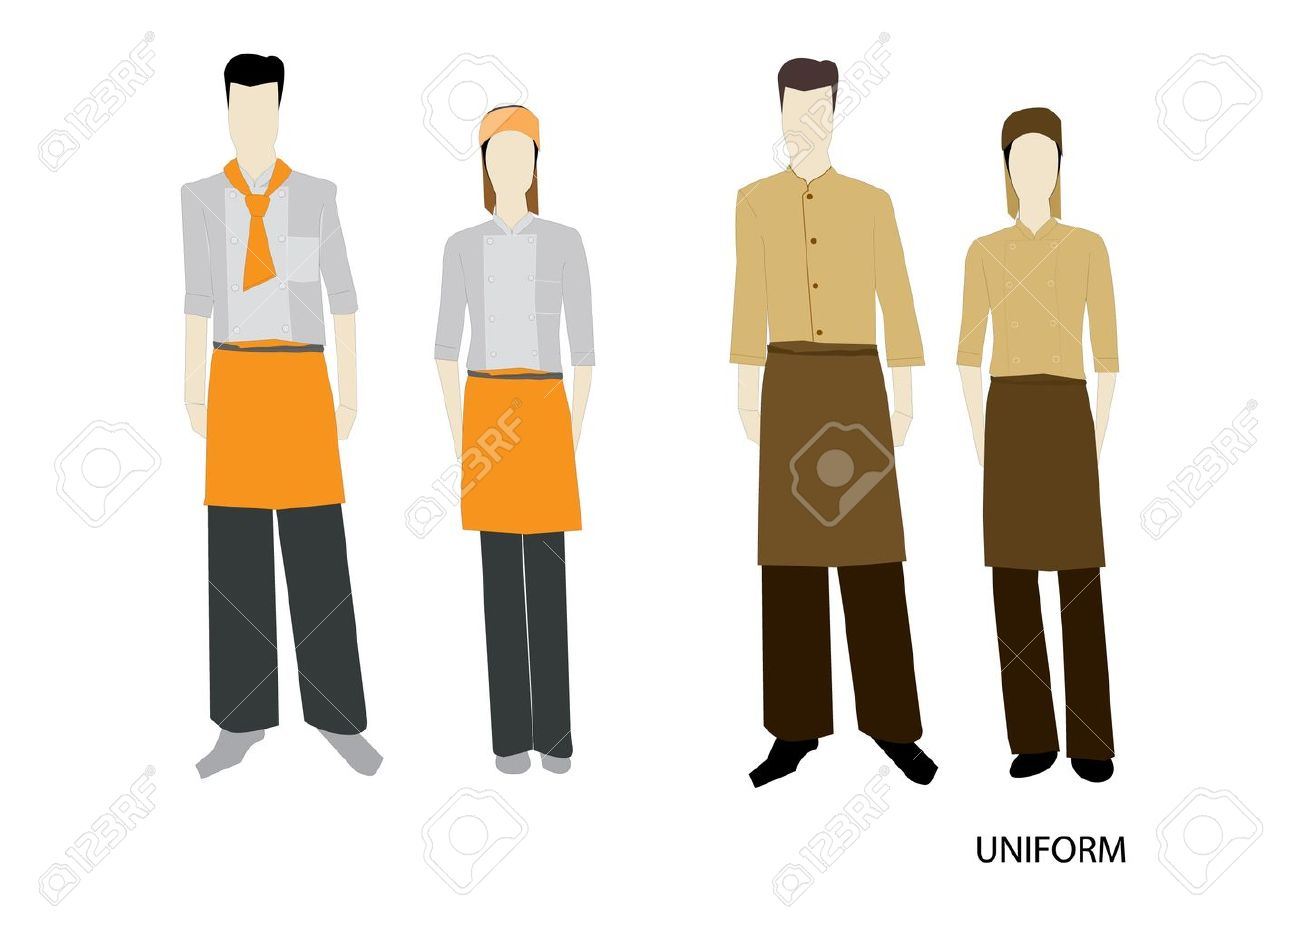 The Uniform complete set Isolated over white background Stock Vector - 17102910